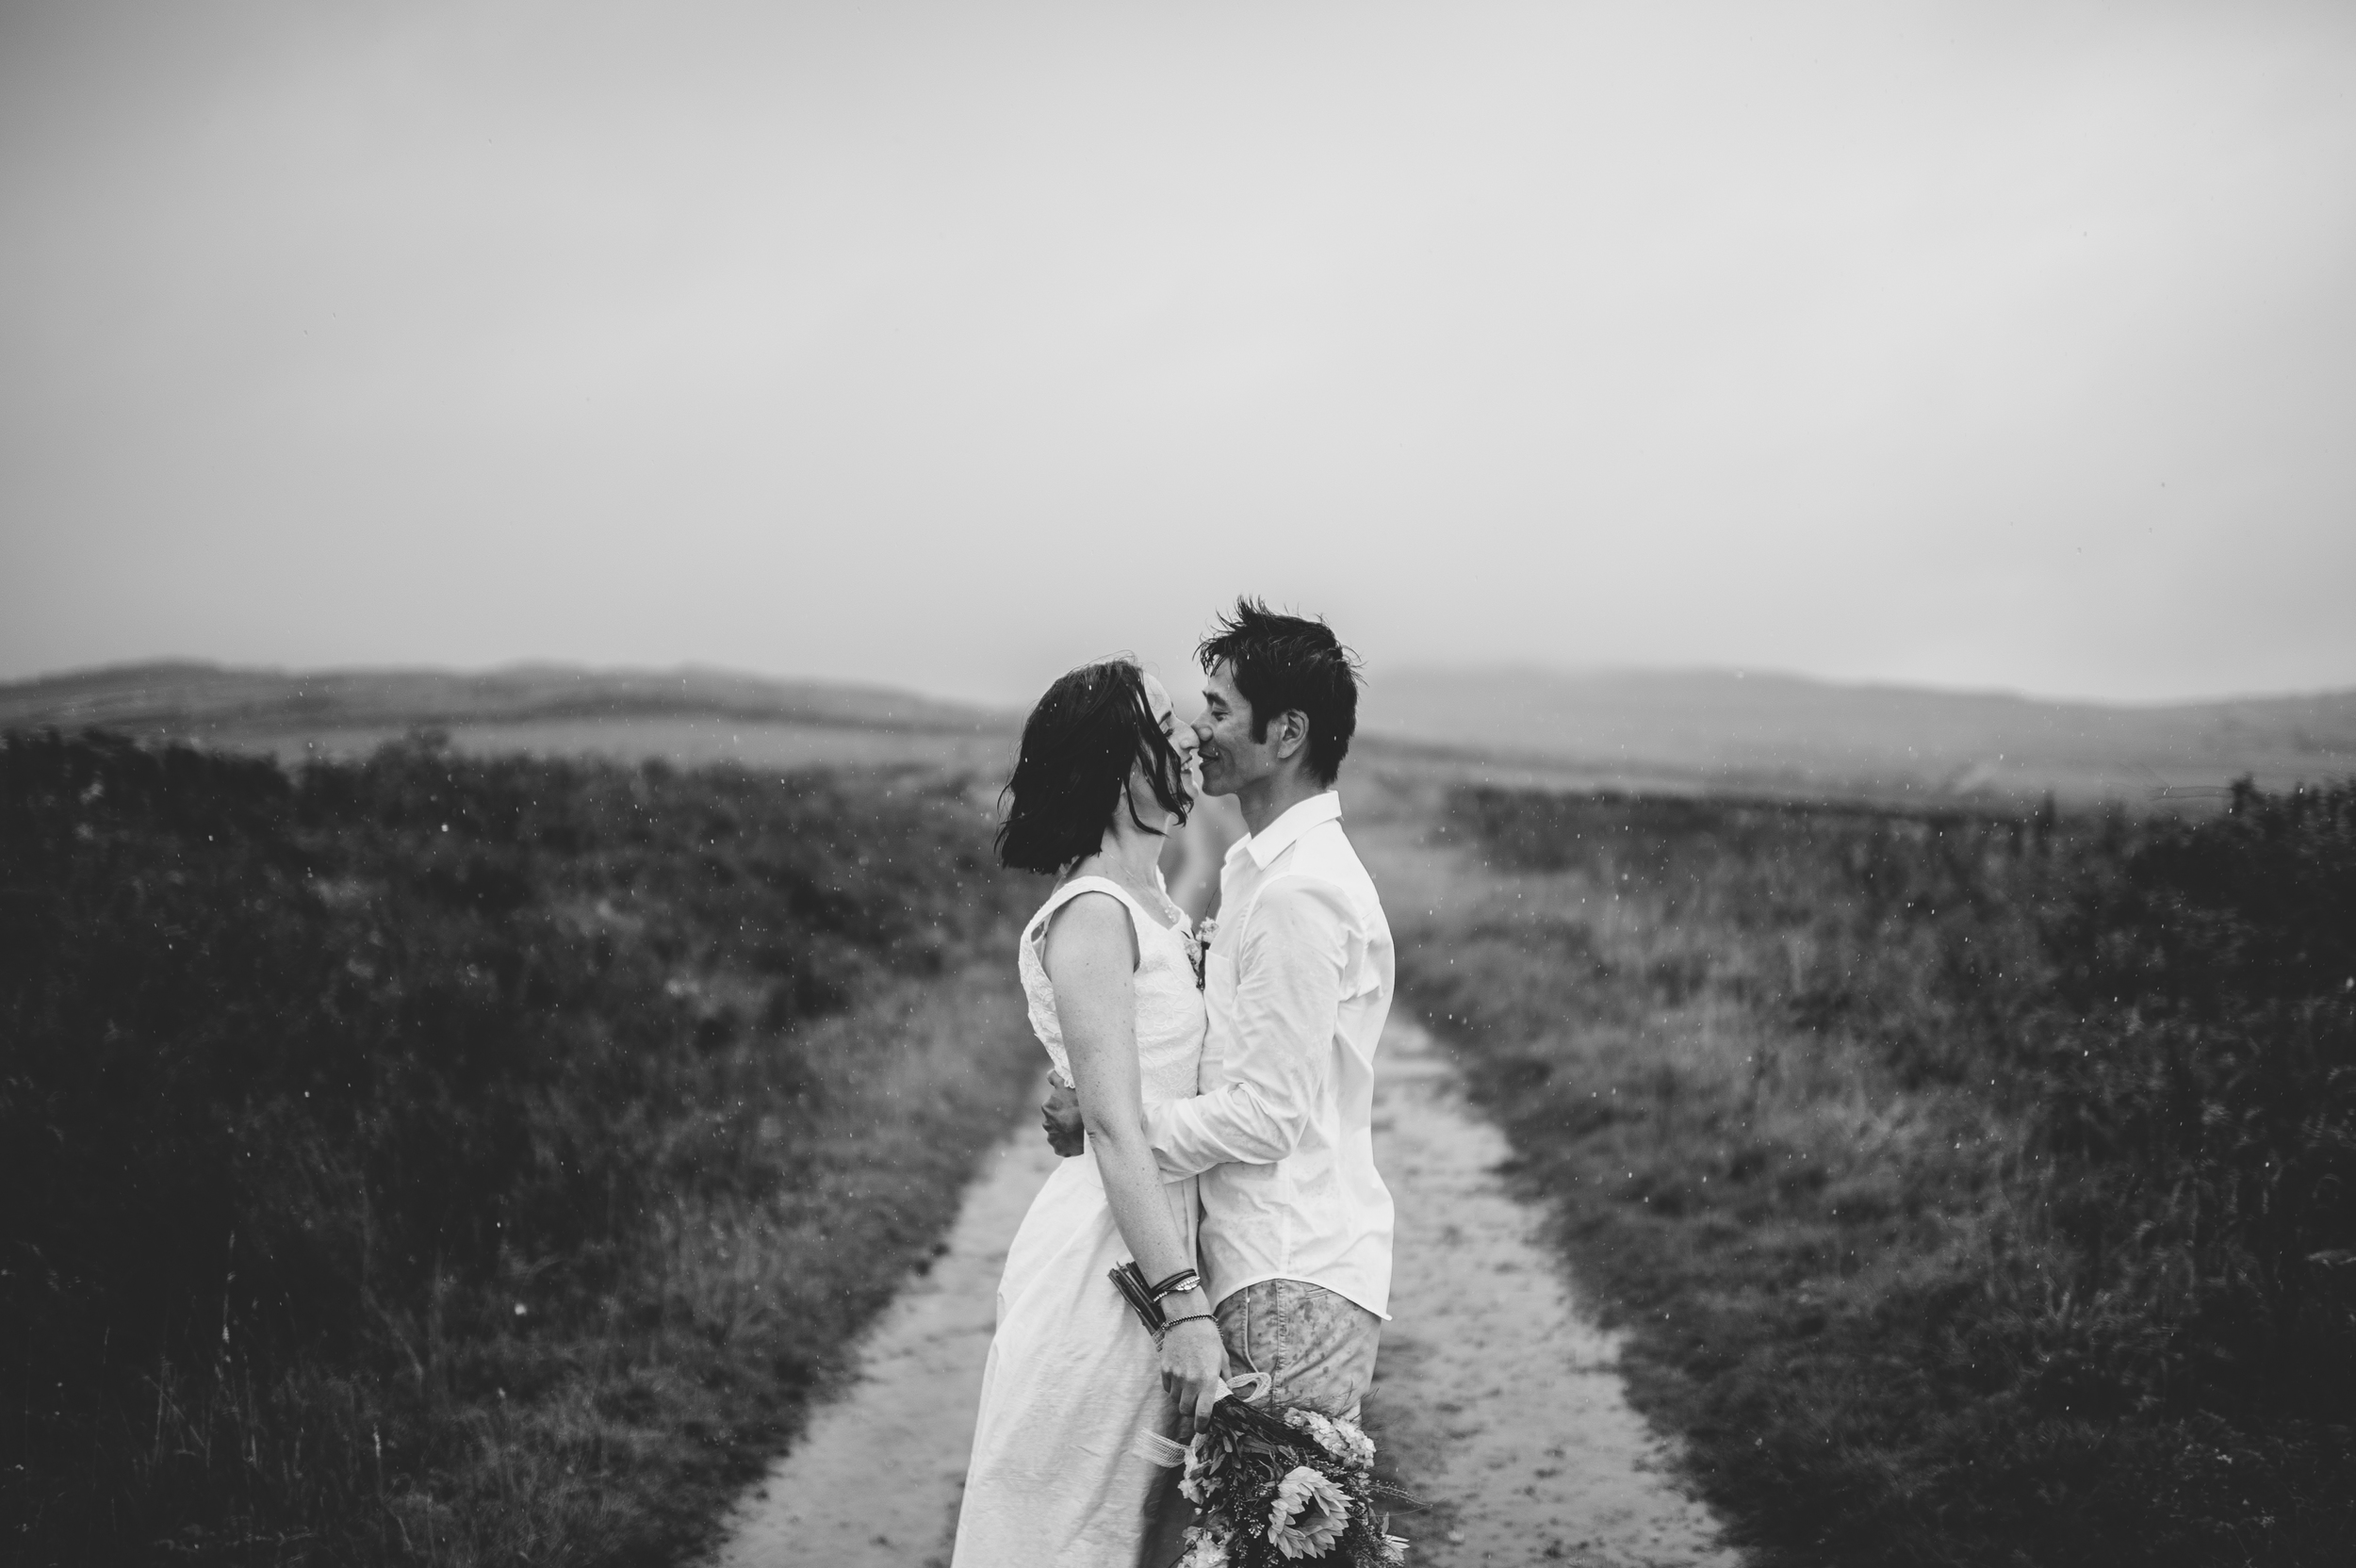 181-lisa-devine-photography-alternative-creative-wedding-photography-glasgow-crear-scotland-ukA.JPG